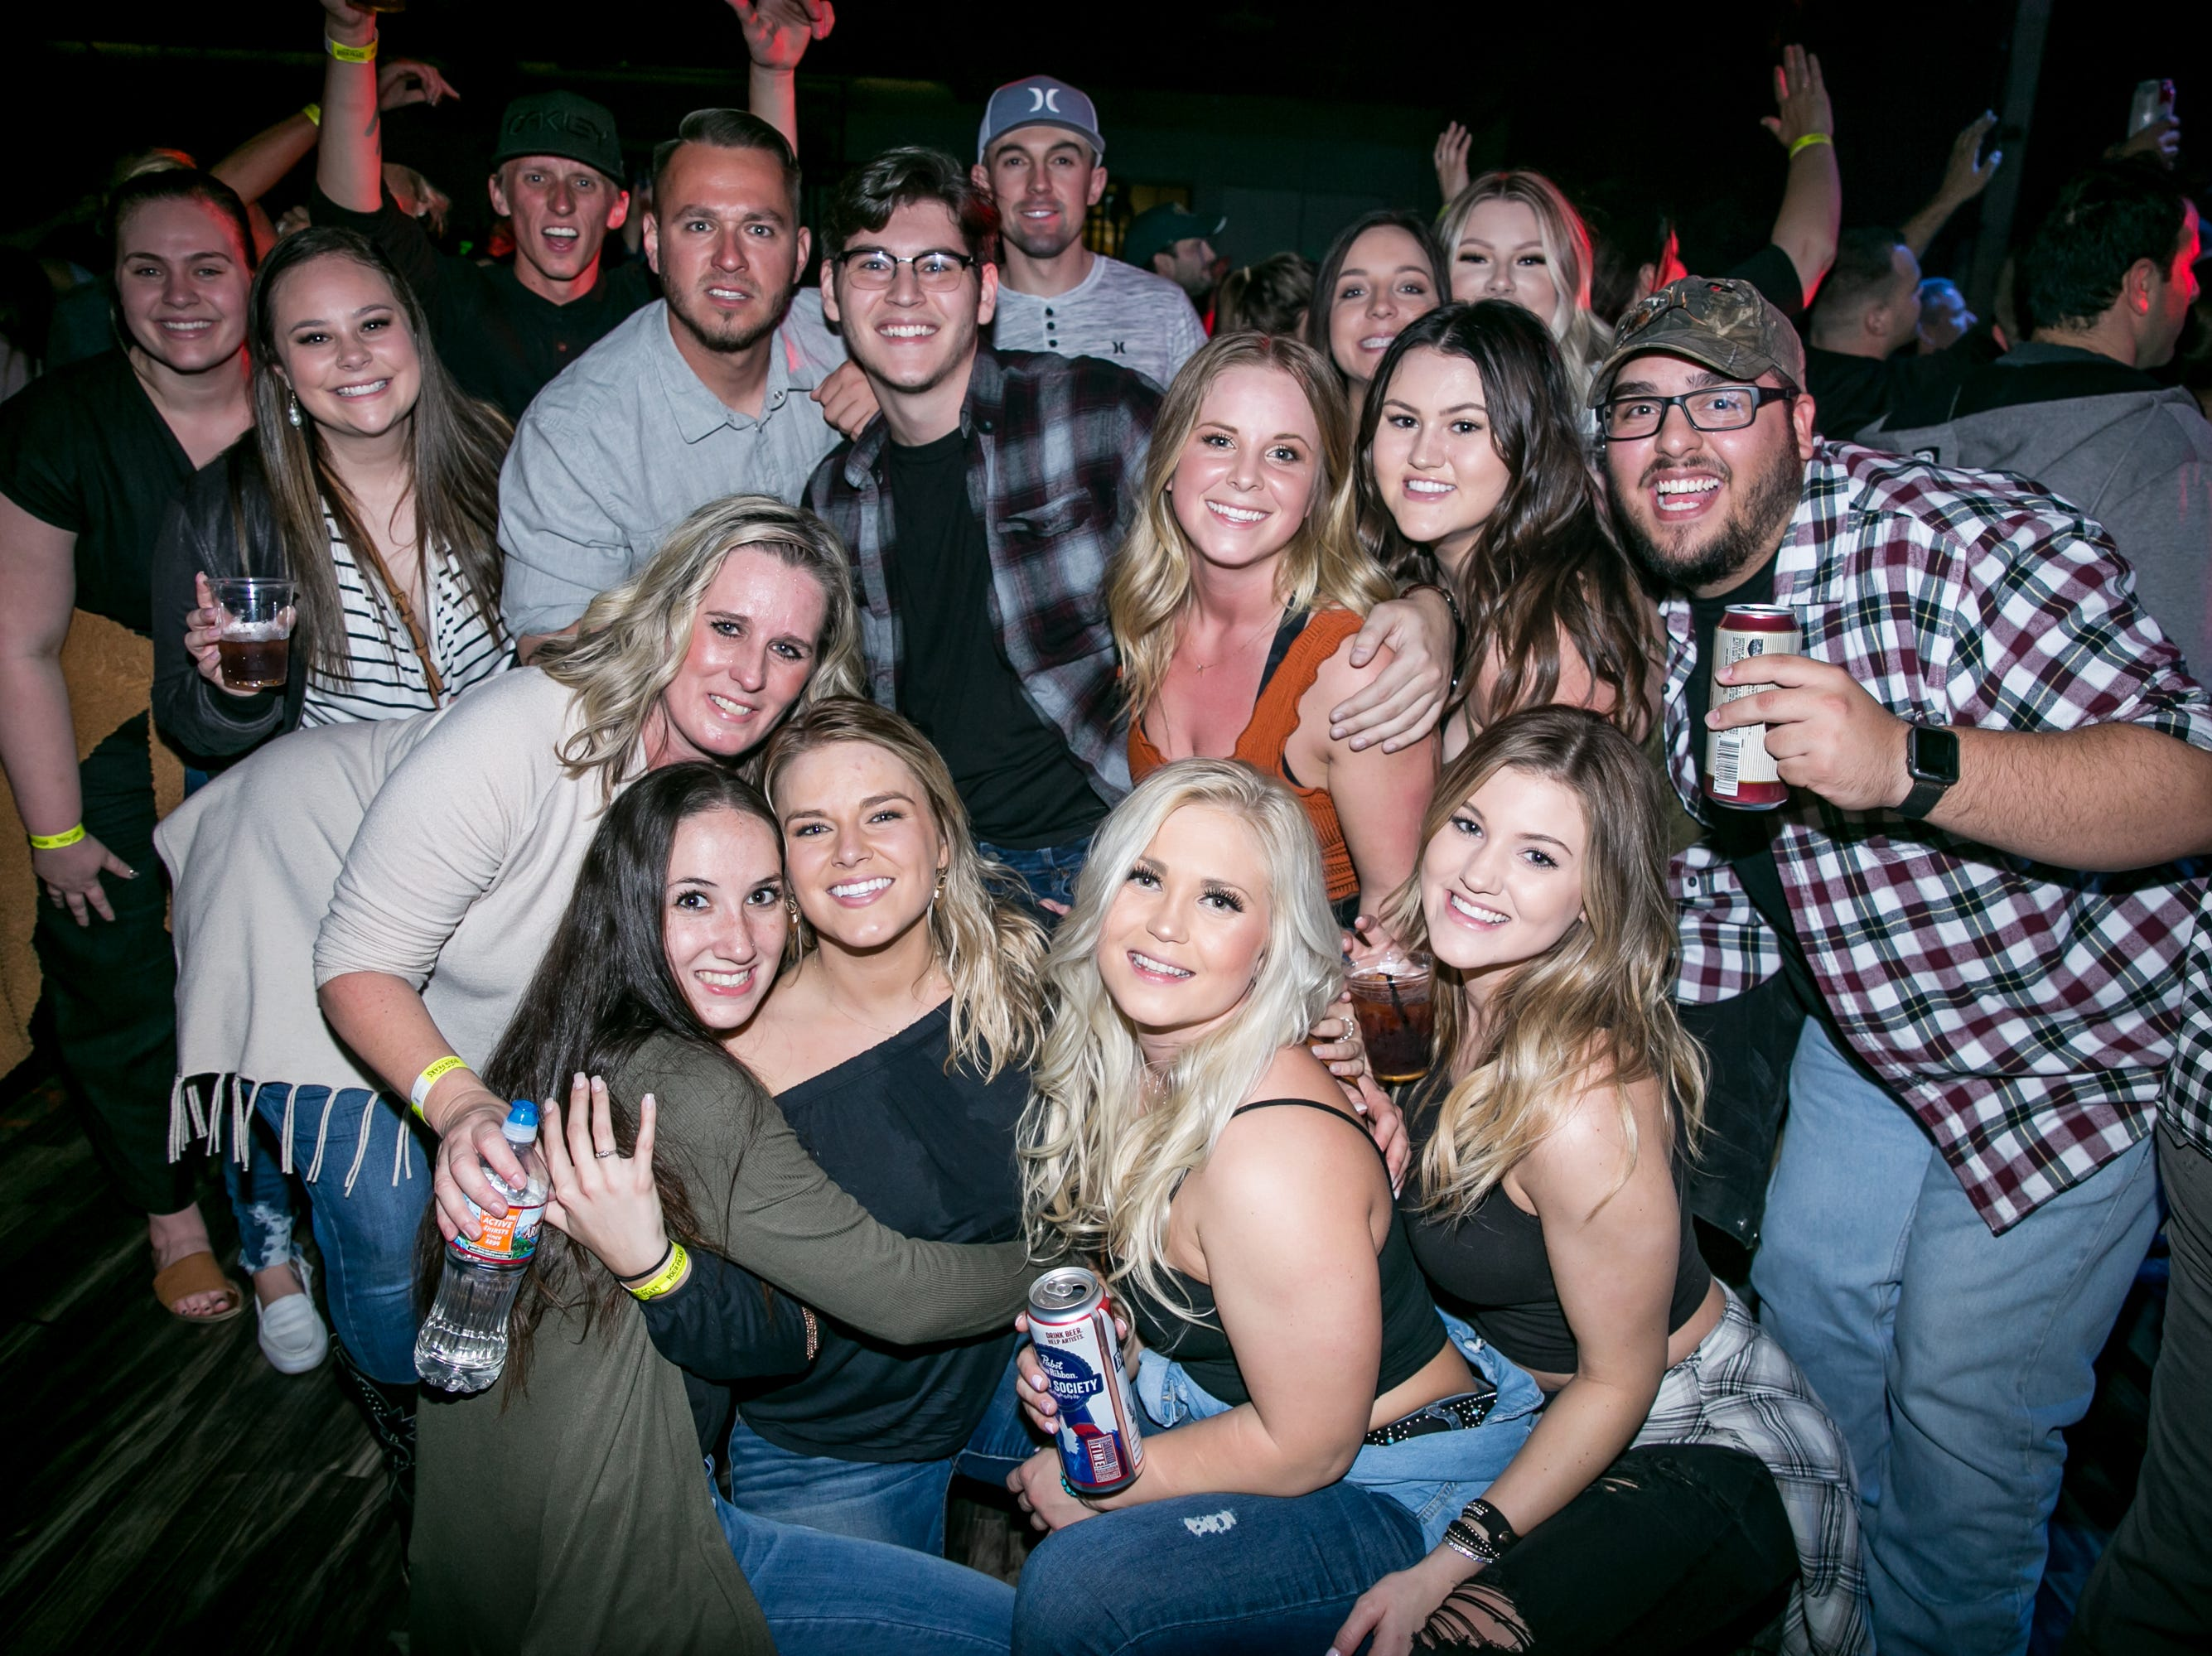 """The dance floor came to life during """"Friends in Low Places"""" during the KMLE Country 90's Throwback at The Van Buren on Friday, Jan. 11, 2019."""